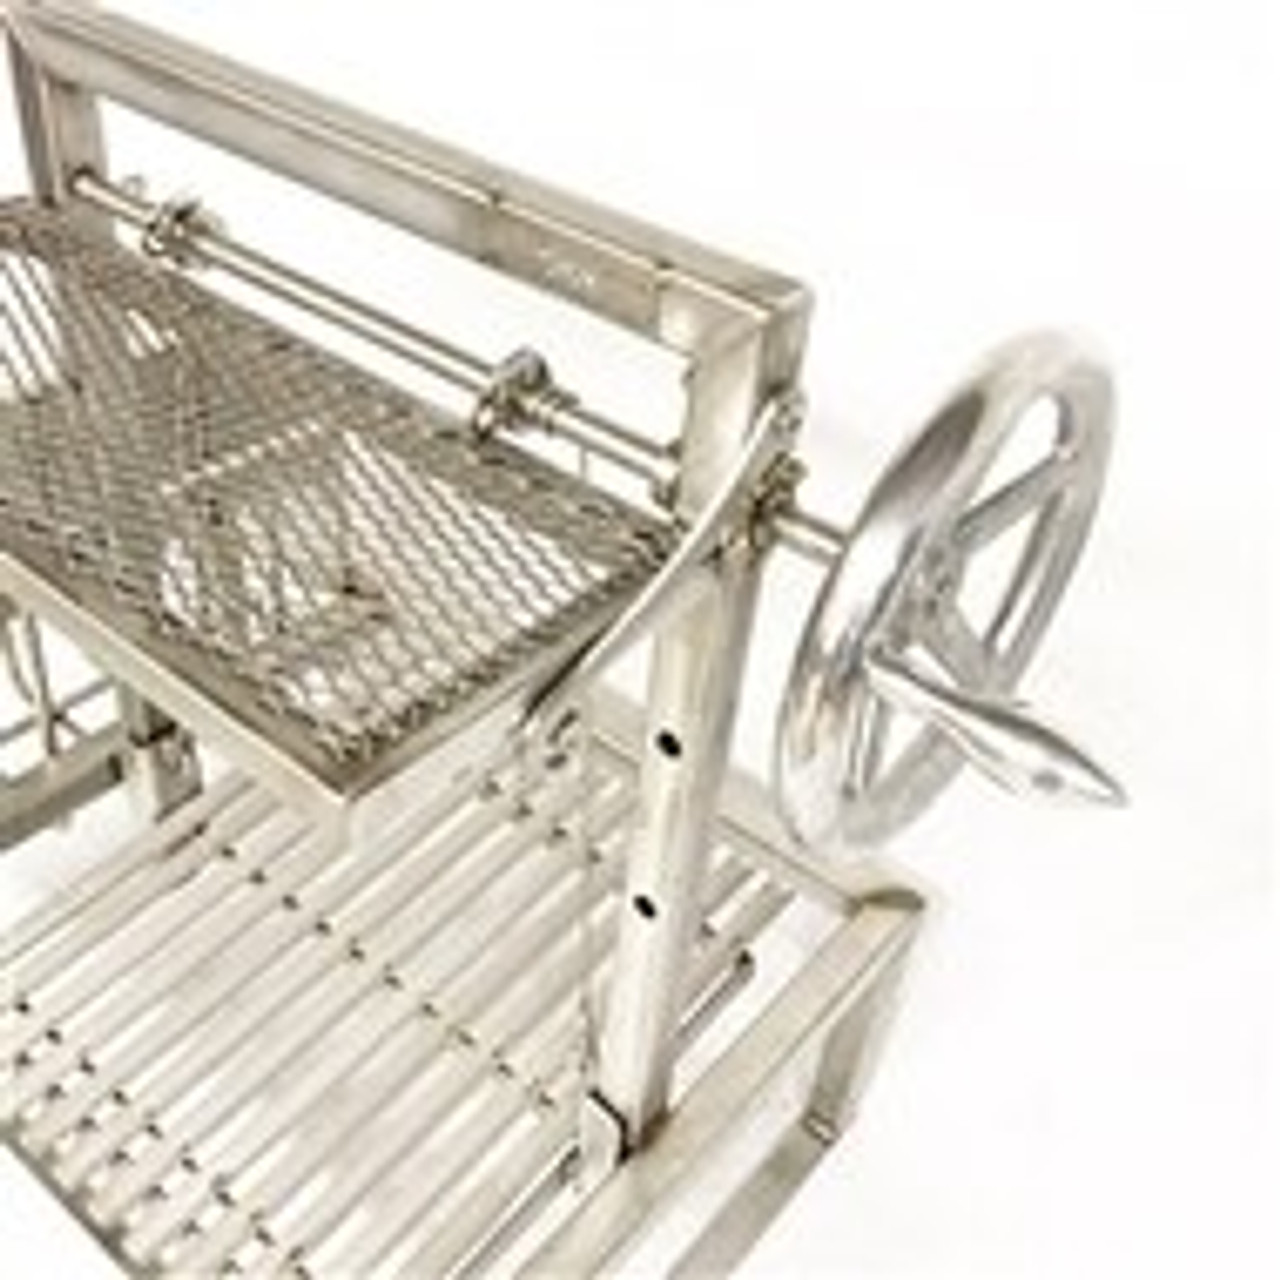 Stainless Steel Standalone Argentine Grill Kits with Brasero and Warming Rack | Free Shipping*